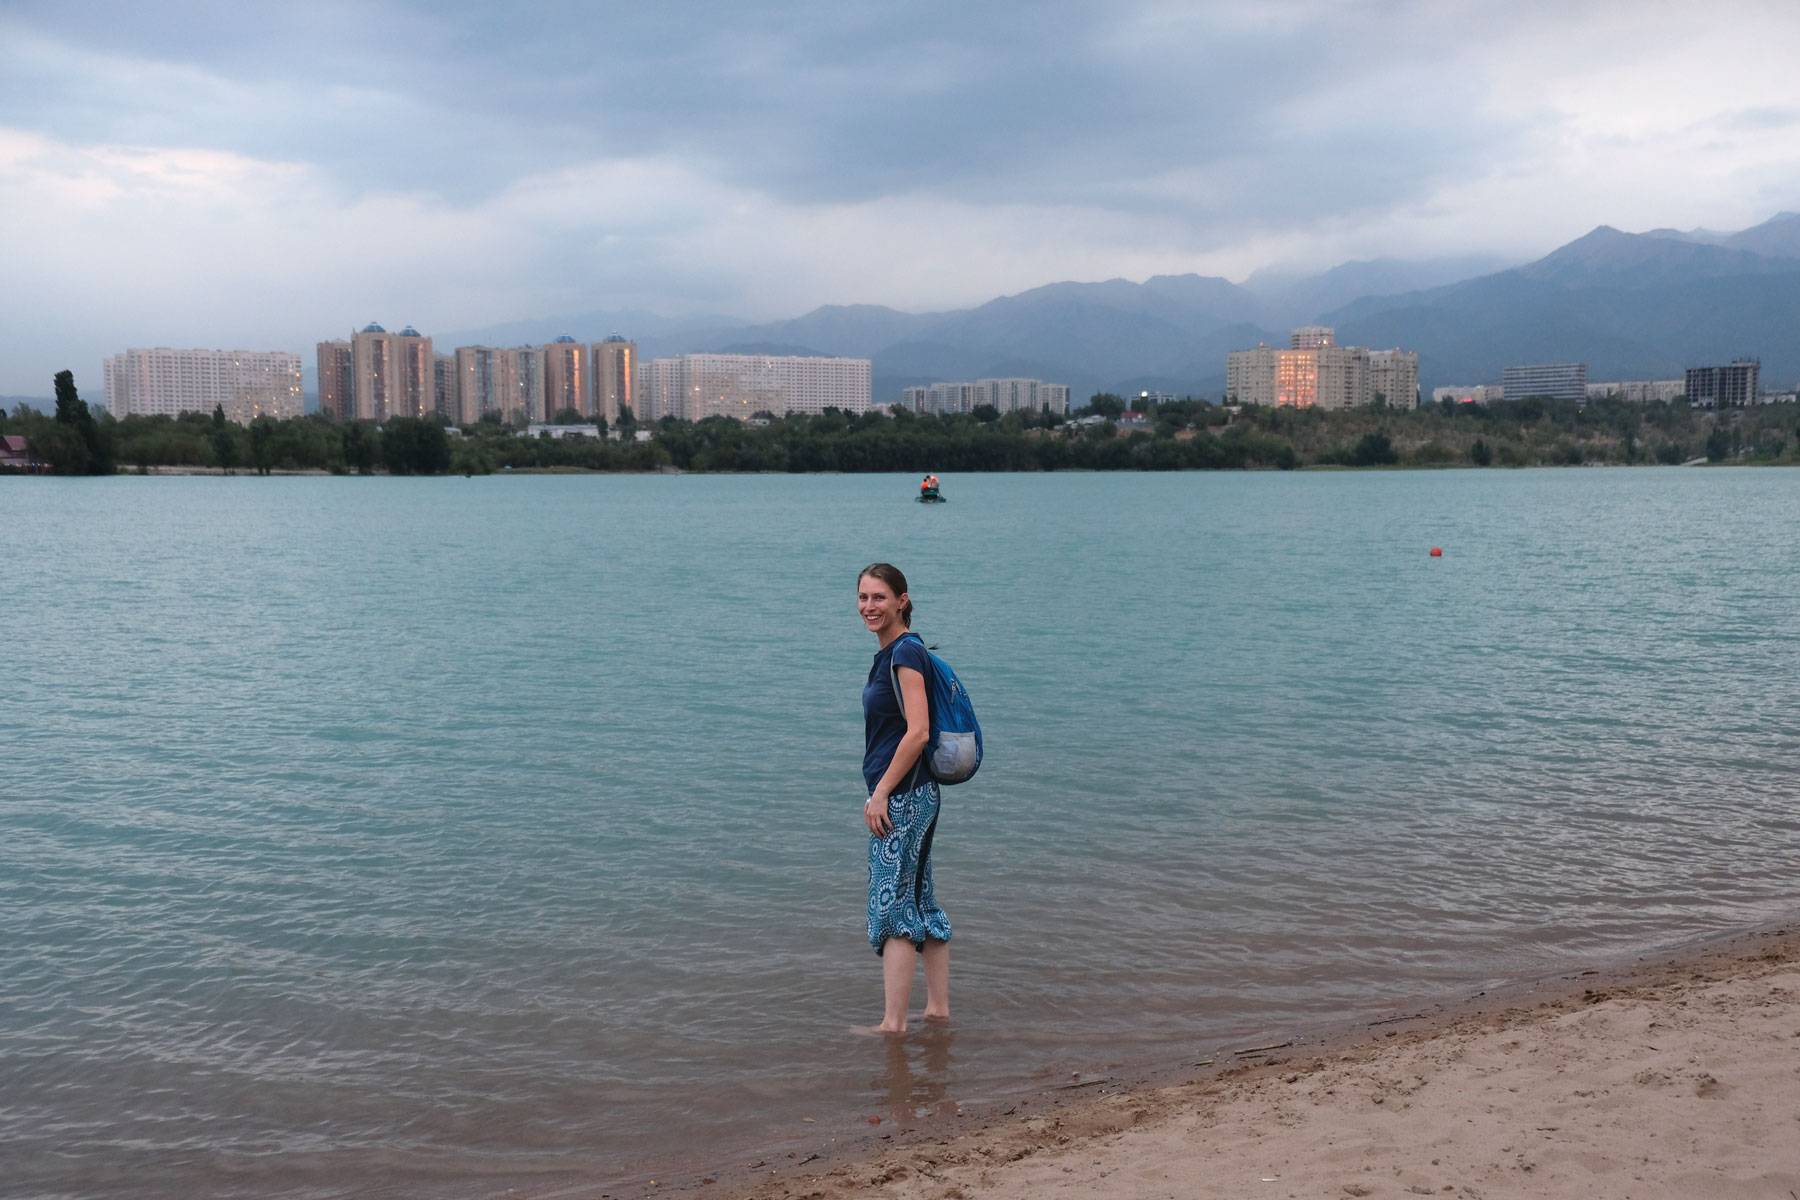 Leo watet in einem See in Almaty.